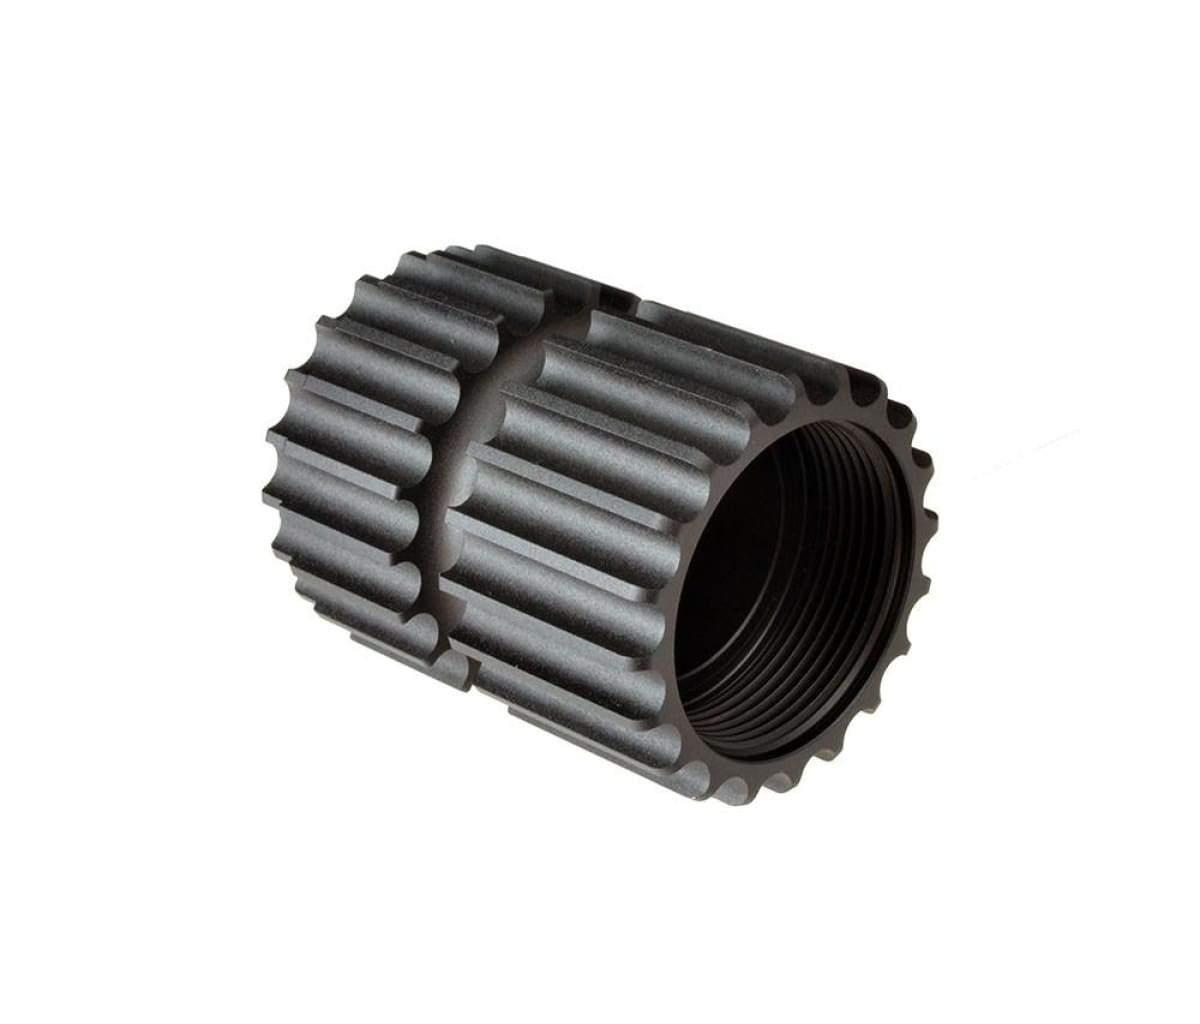 Strike Industries Rail Lightweight 7250 Barrel Nut - AR15Discounts